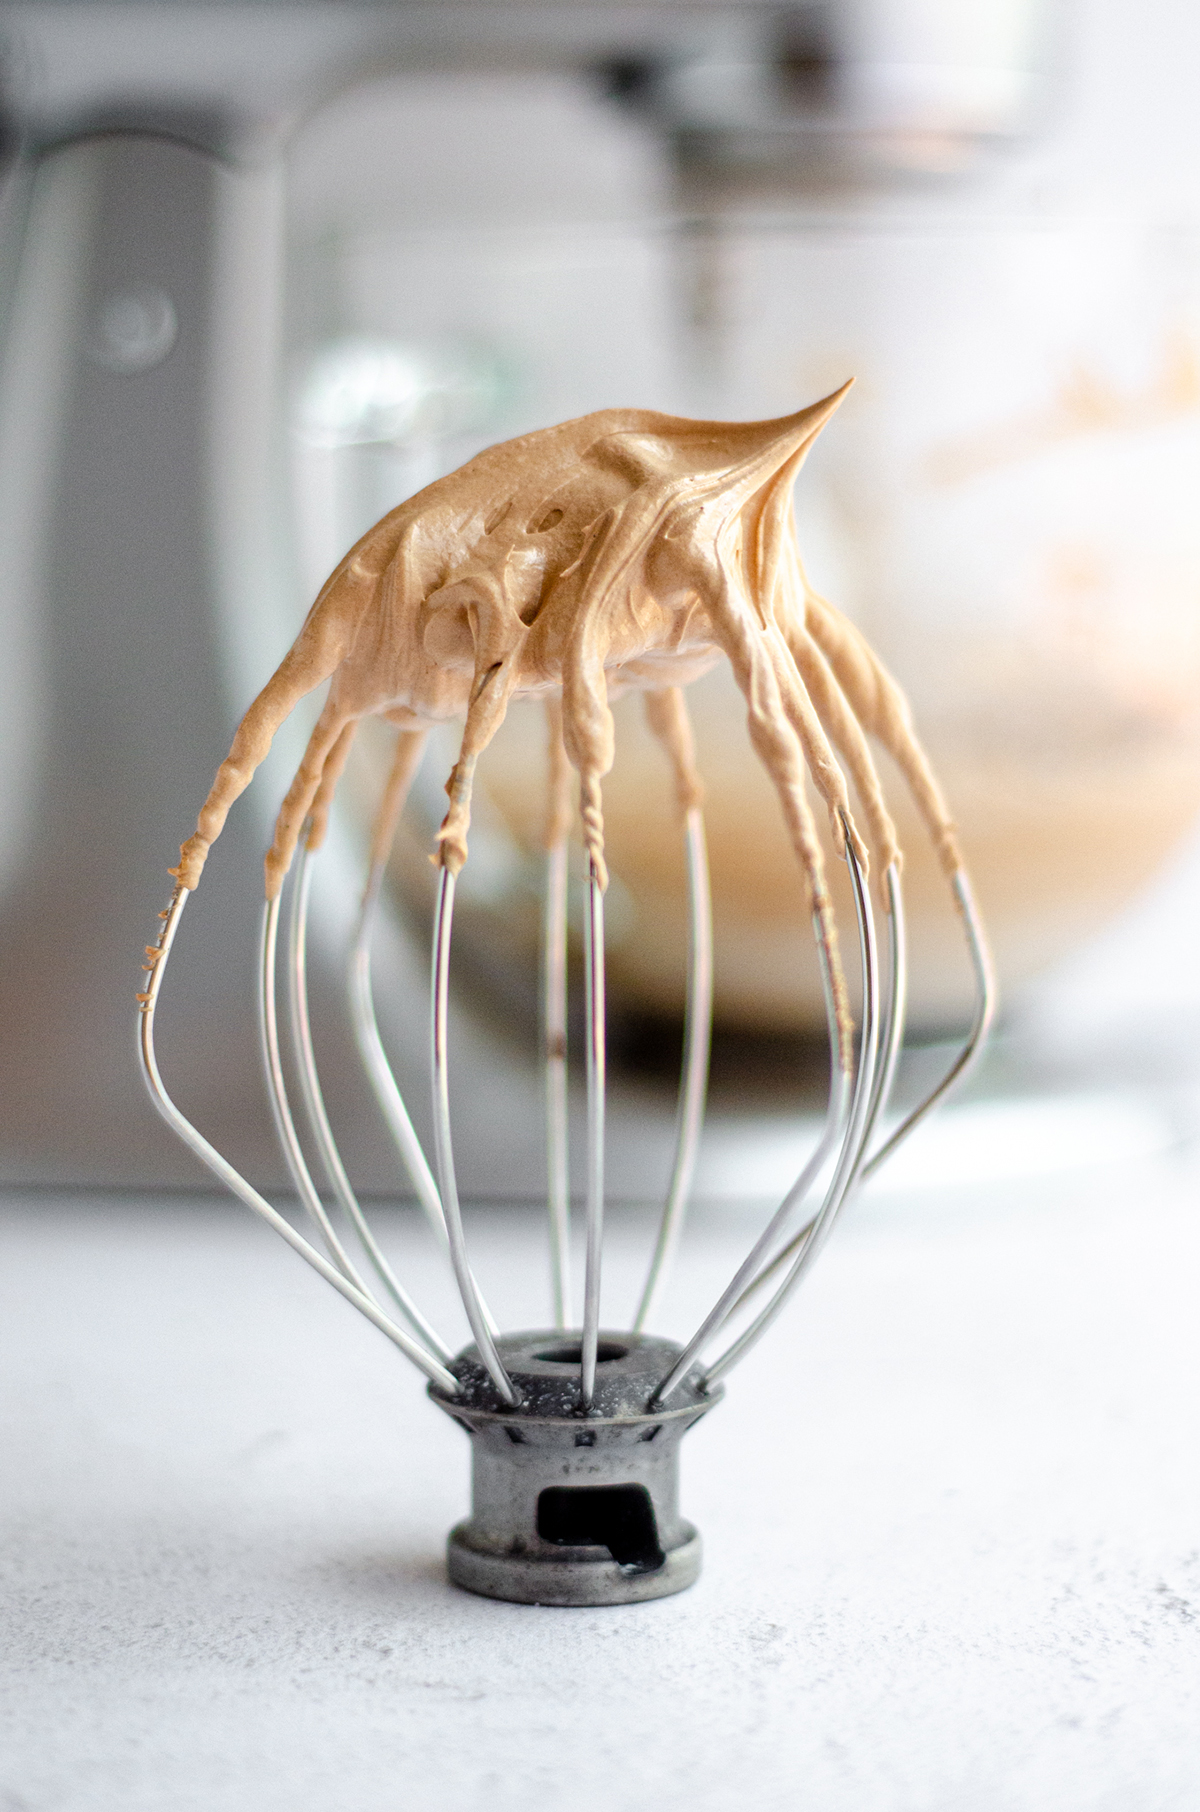 whisk attachment for a stand mixer with chocolate swiss meringue buttercream peaks on the tip